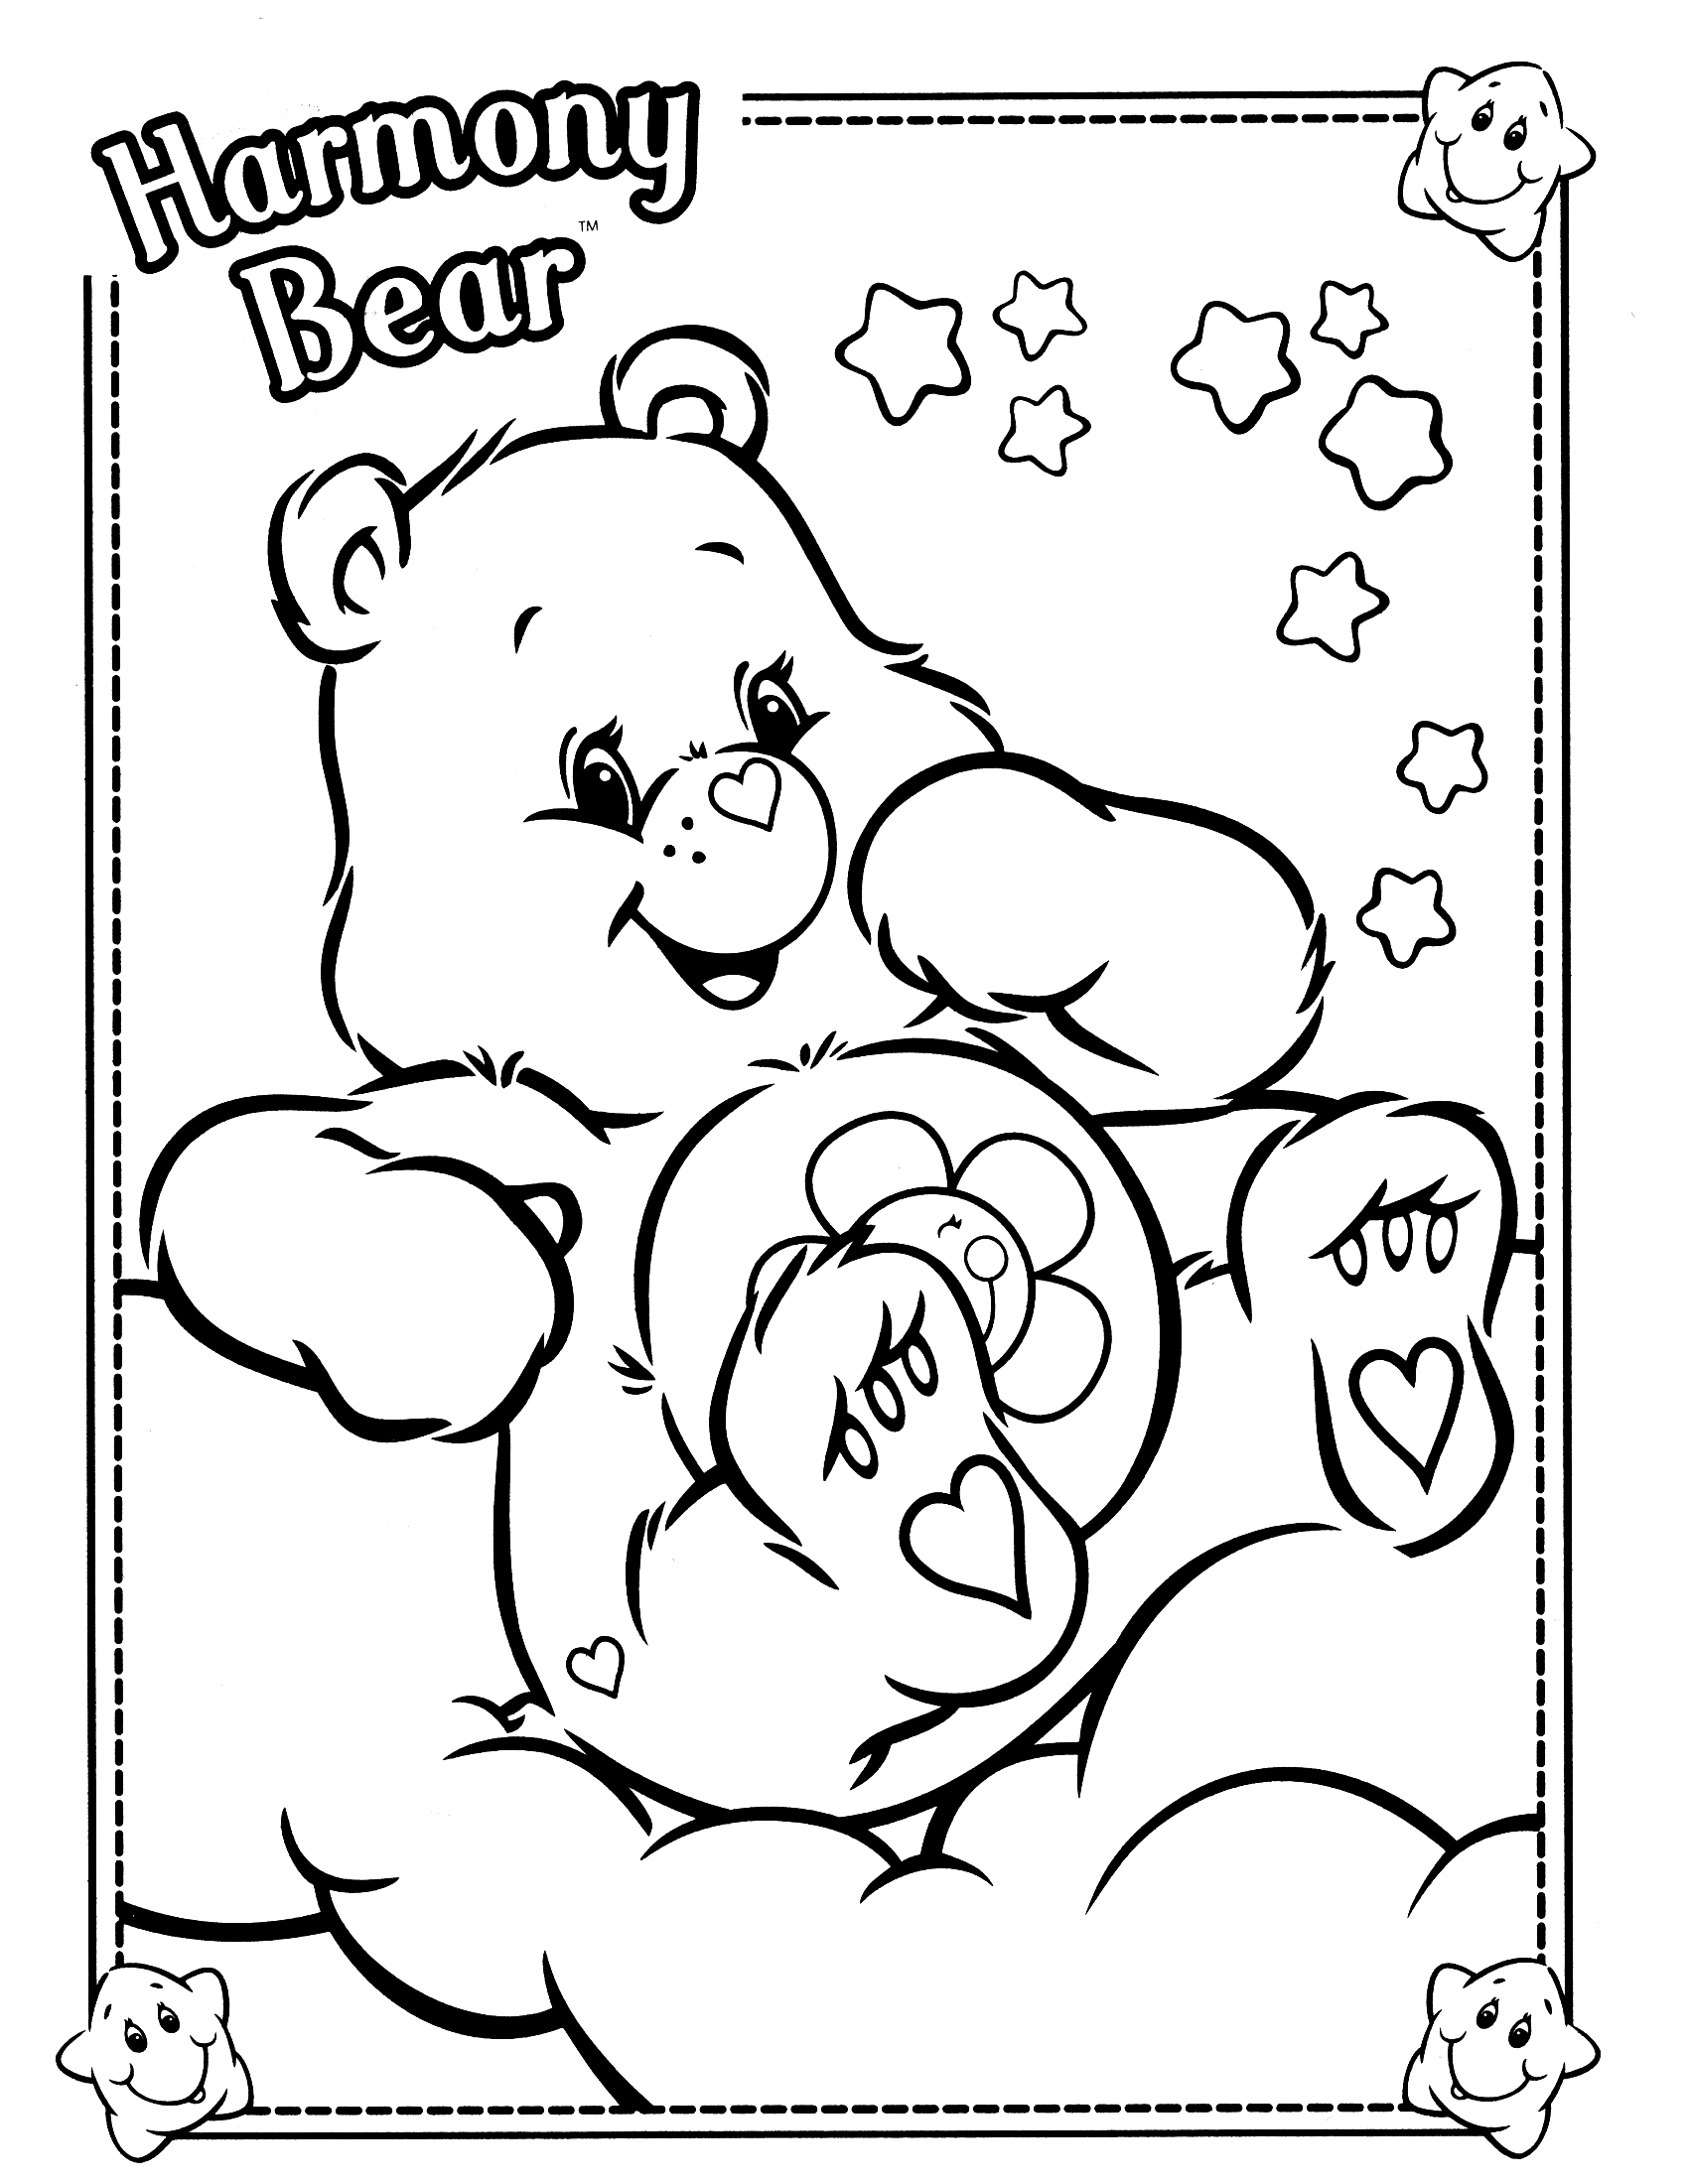 Harmony Coloring Pages At Getcolorings